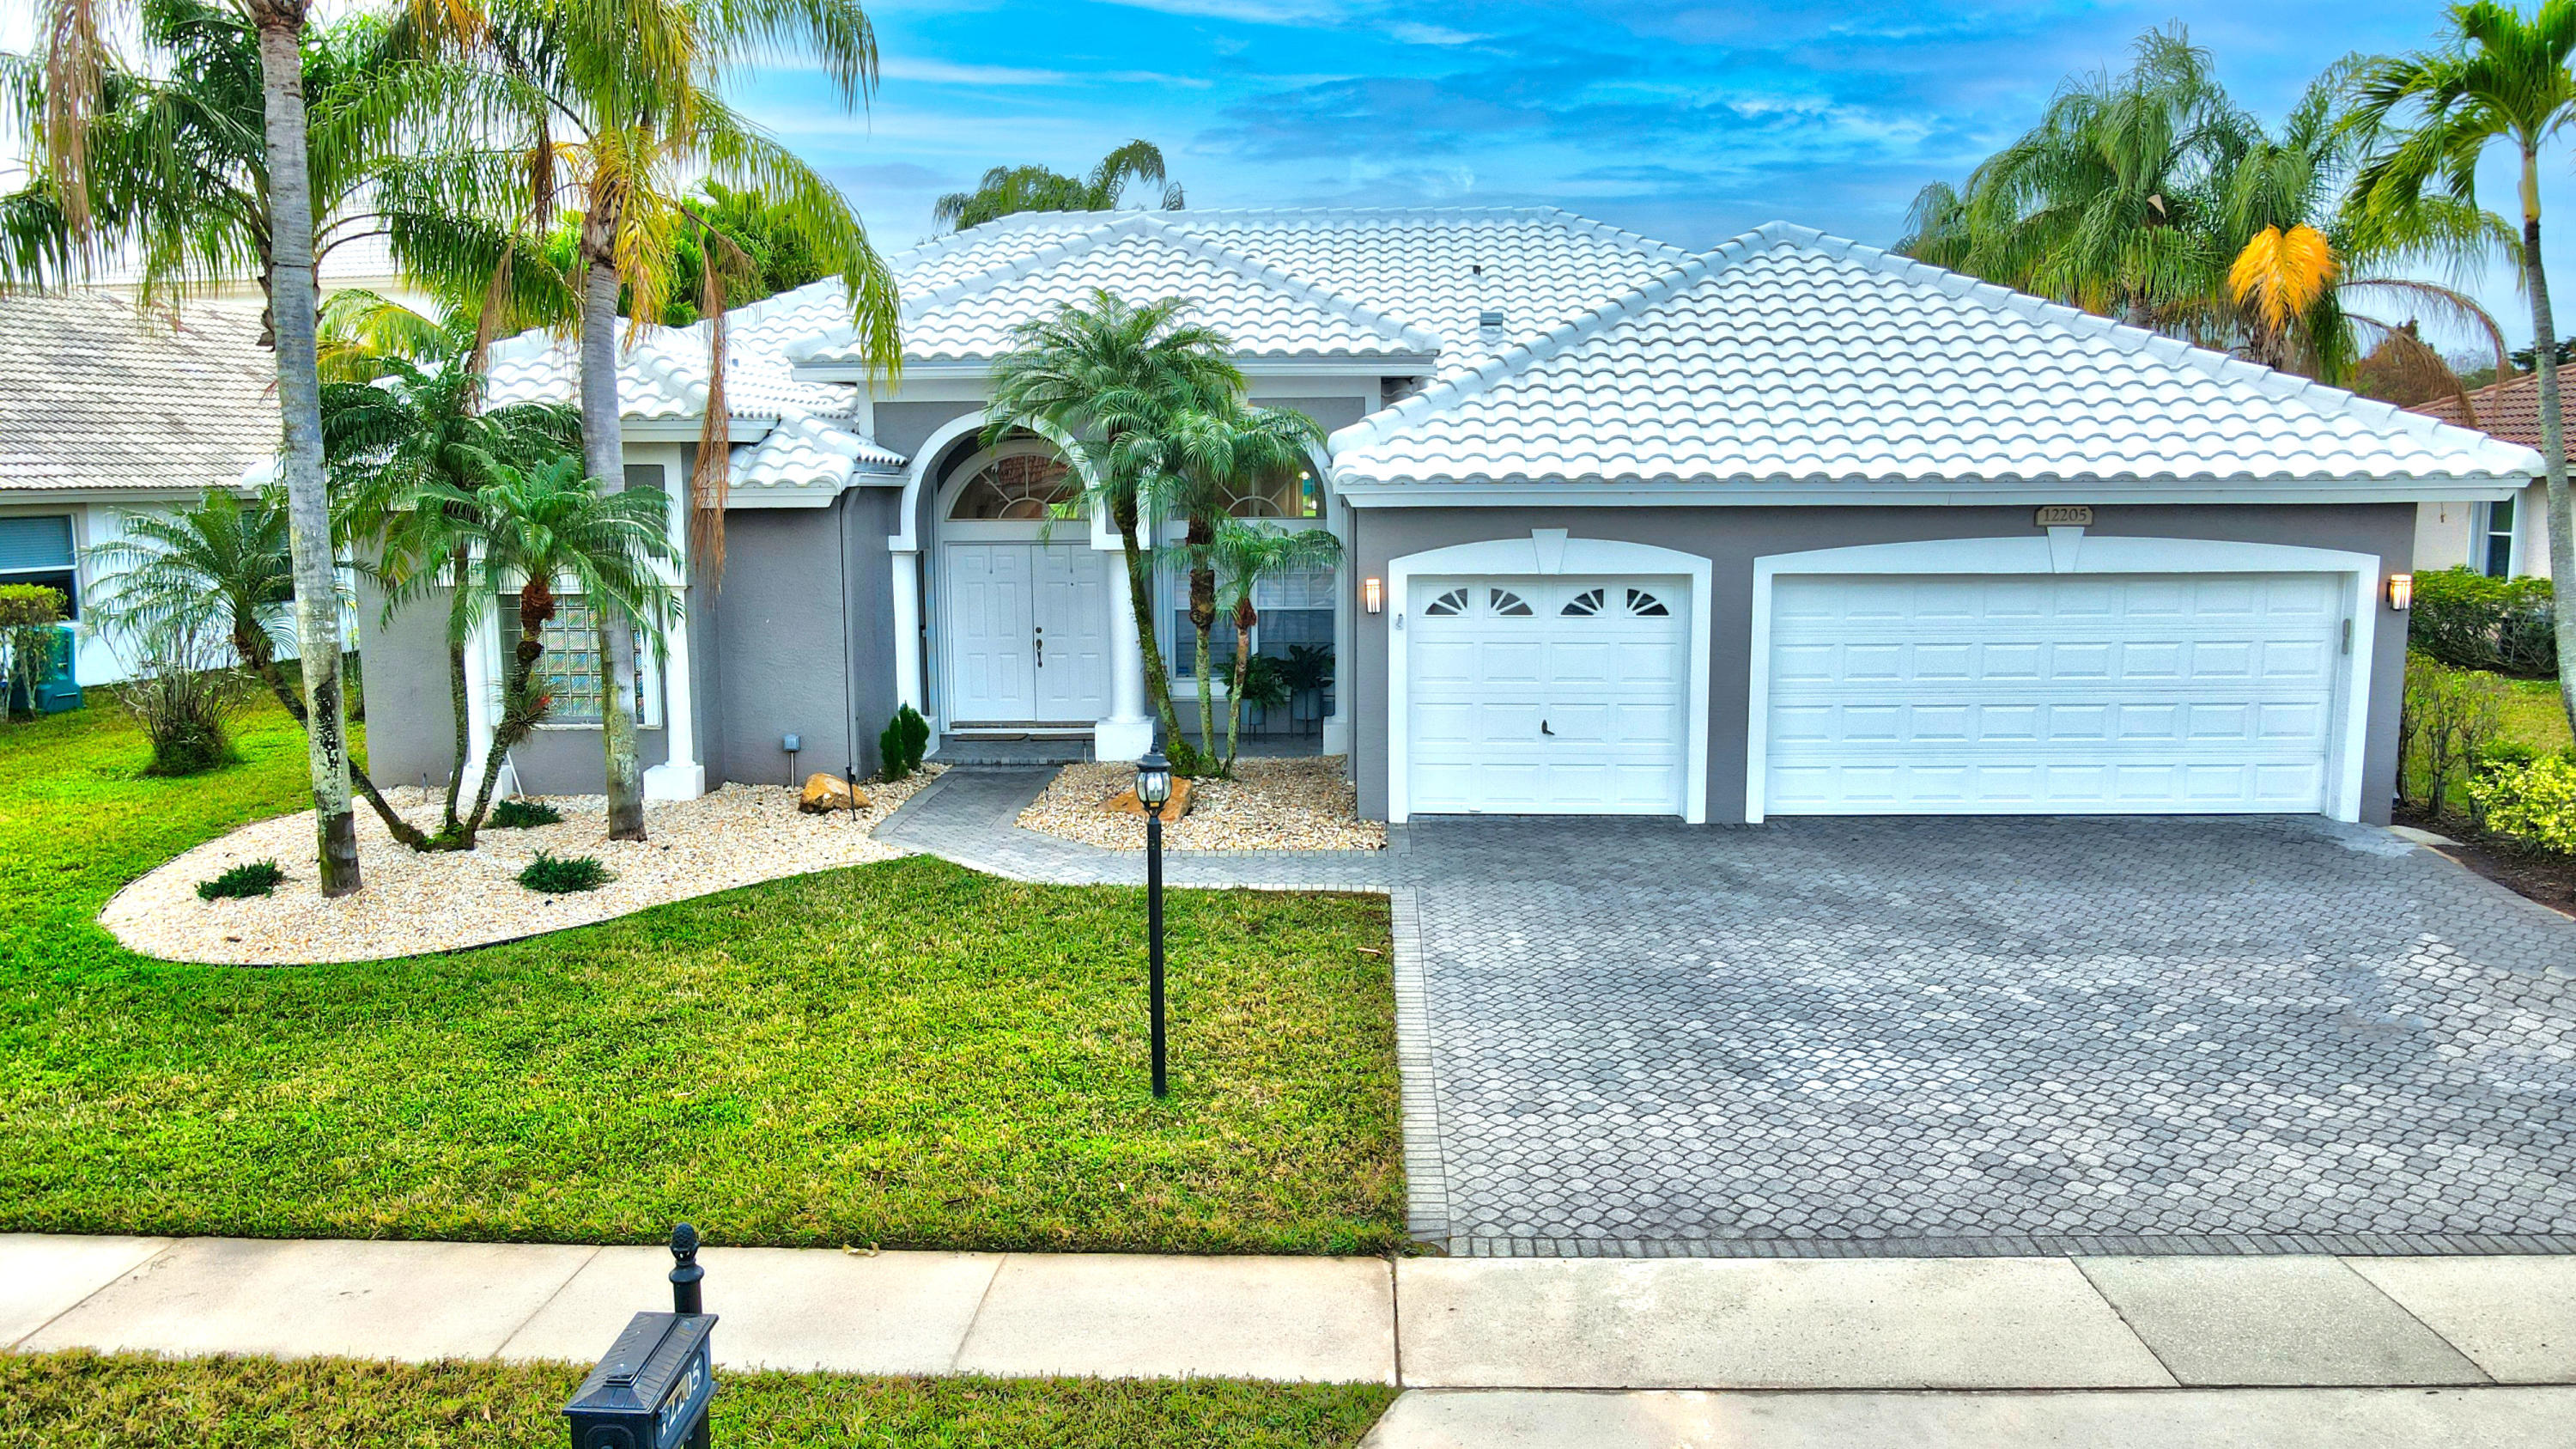 Photo of 12205 Rockledge Circle, Boca Raton, FL 33428